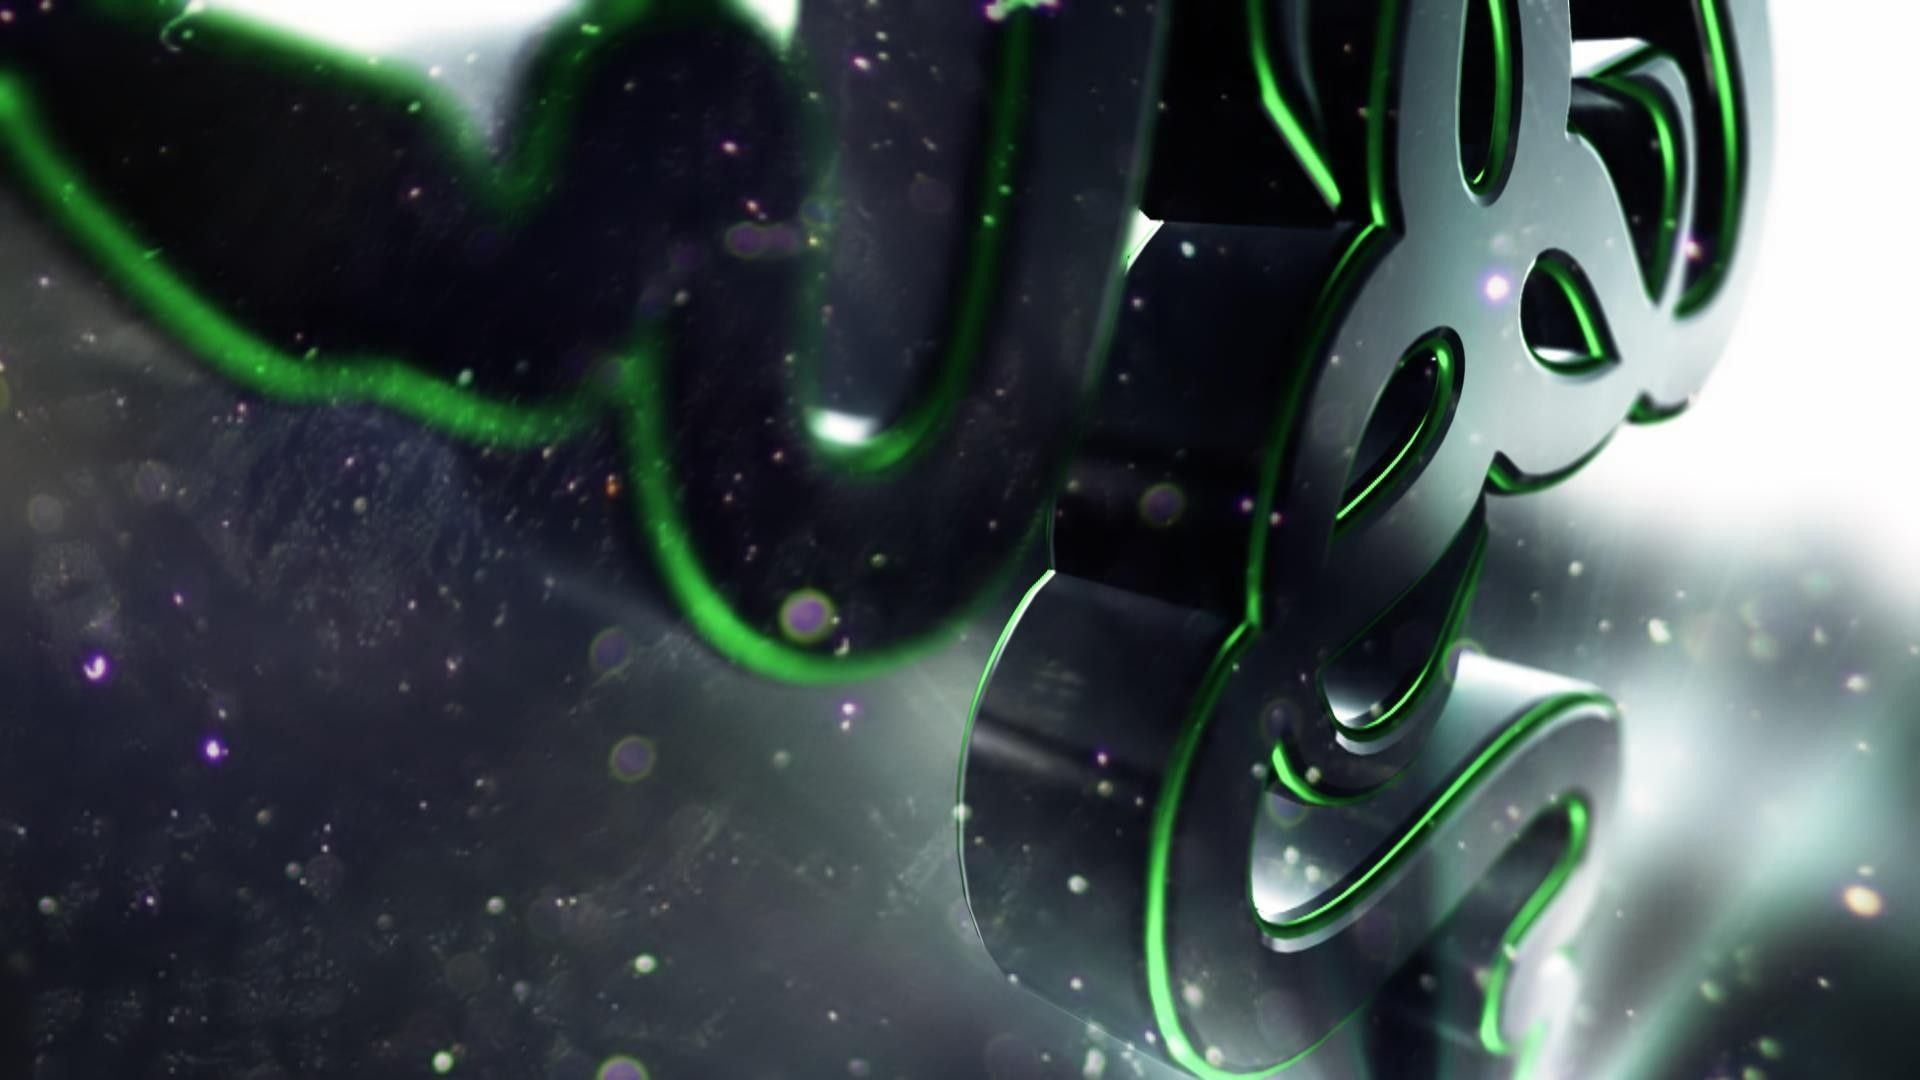 Download Wallpaper 1920x1080 Razer Logo Symbol Shape Full Hd 1080p Hd Background Bilder Hintergrund Kunst